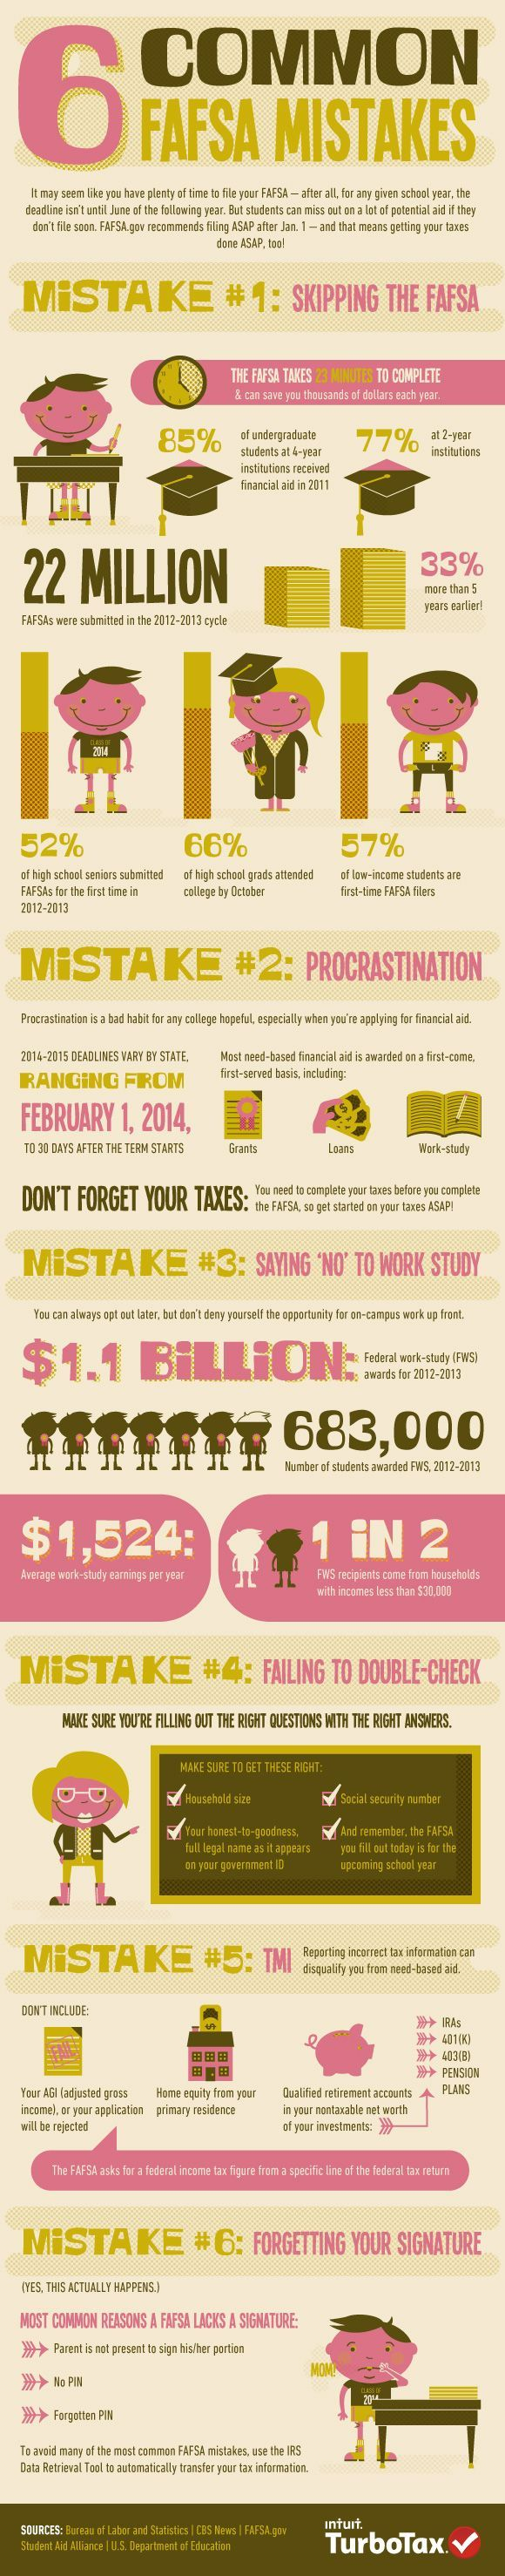 6 common fafsa mistakes dont let college students procrastinate 6 common fafsa mistakes college students dont procrastinate on your taxes they must be complete before you can file your fafsa ccuart Images